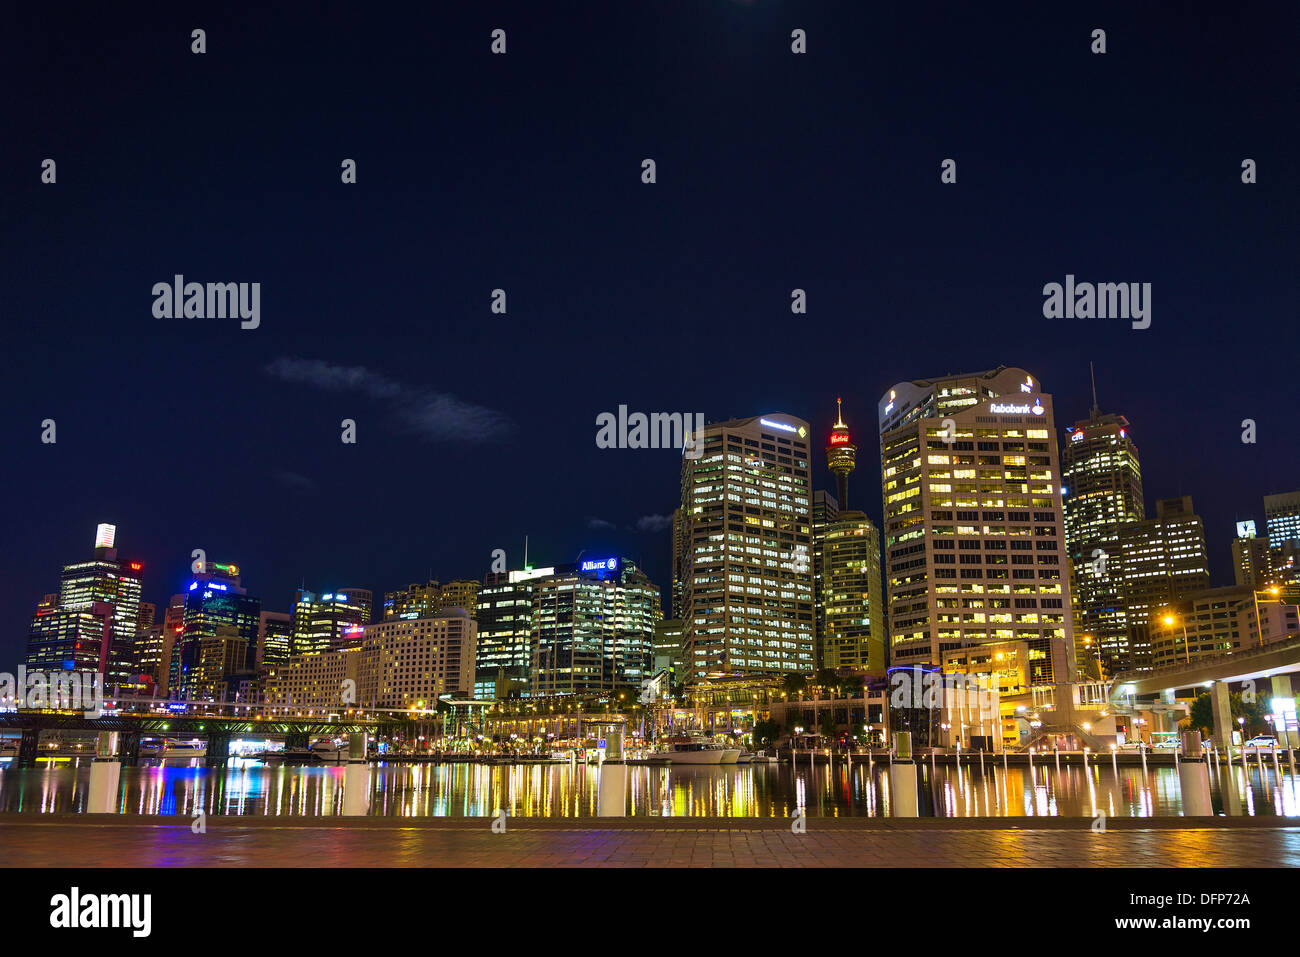 Skyline von den Darling Harbour in Sydney, Australien Stockbild